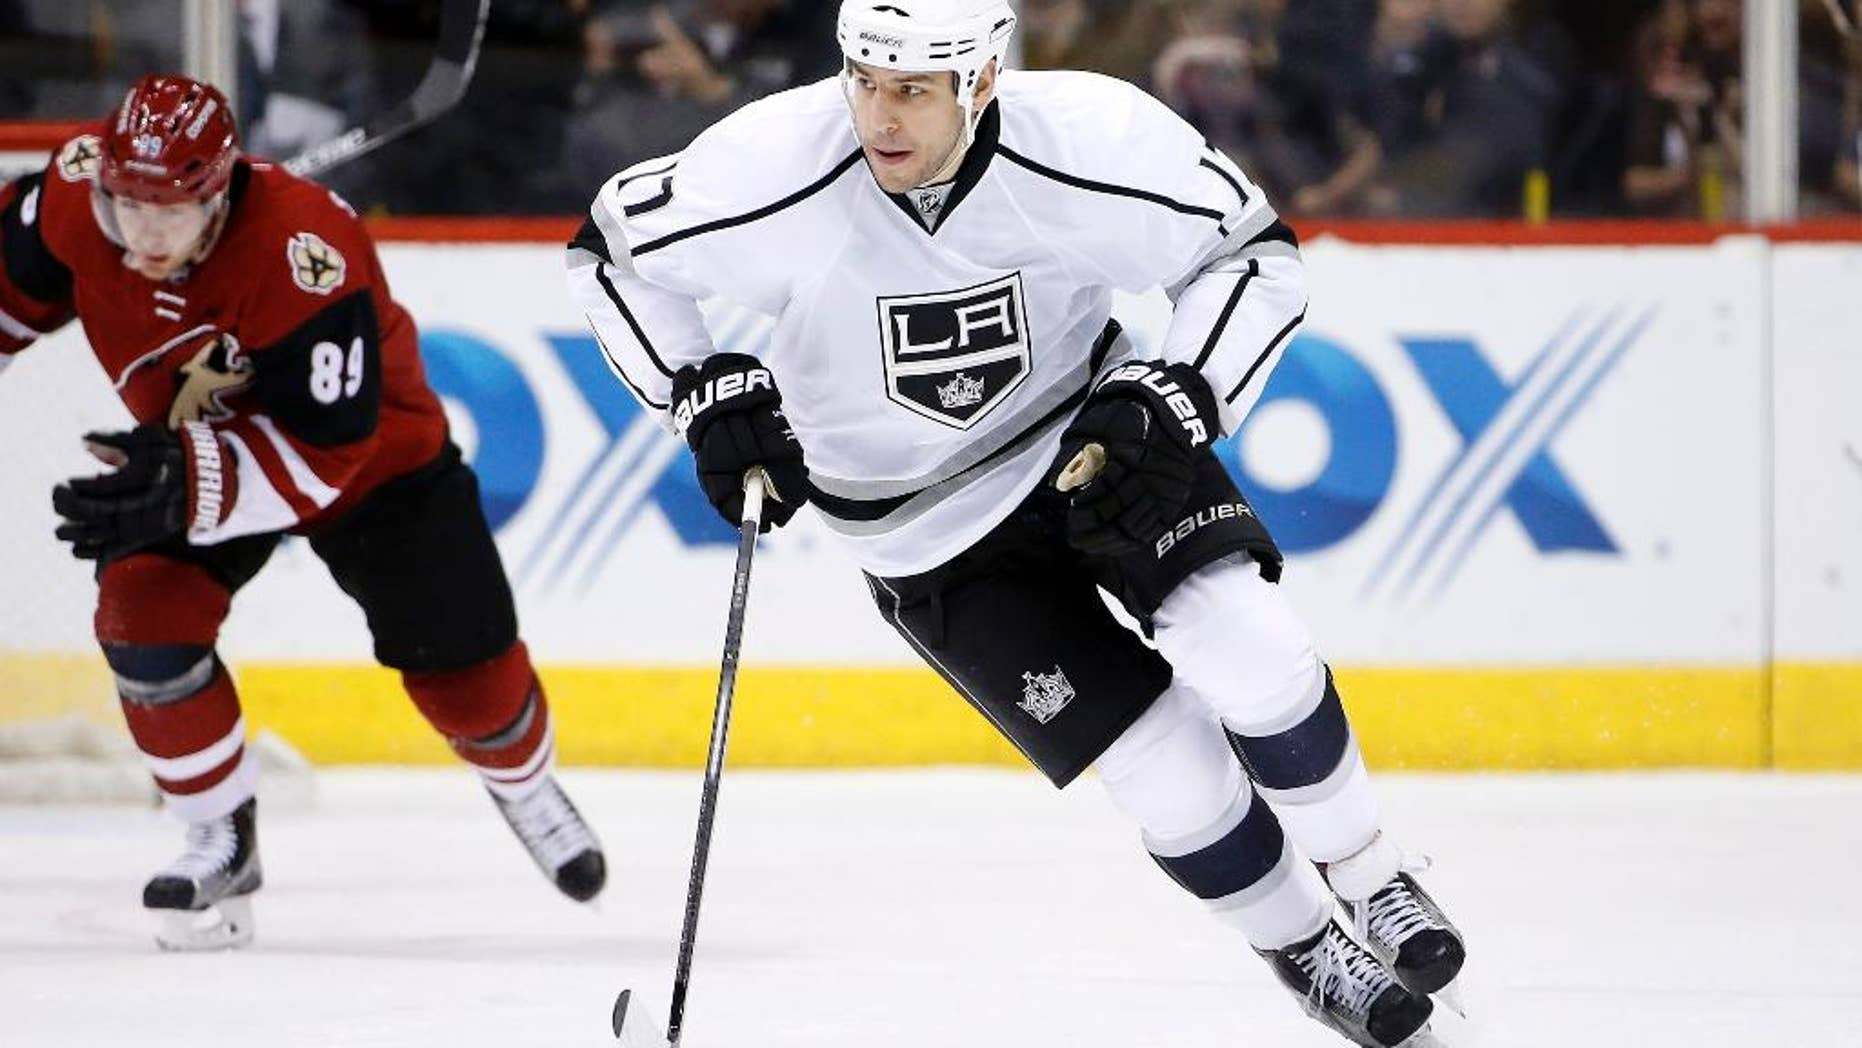 FILE- In this Feb. 2, 2016, file photo, Los Angeles Kings' Milan Lucic (17) skates with the puck during an NHL hockey game in Glendale, Ariz. The New Jersey Devils have acquired former No. 1 overall draft pick Taylor Hall from the Edmonton Oilers for defenseman Adam Larsson, which the teams announced Wednesday, June 29, 2016, two days before the start of free agency. The Oliers get salary cap space to possibly sign free agent Lucic with Hall's $6 million annual salary heading to New Jersey. (AP Photo/Ross D. Franklin. File)